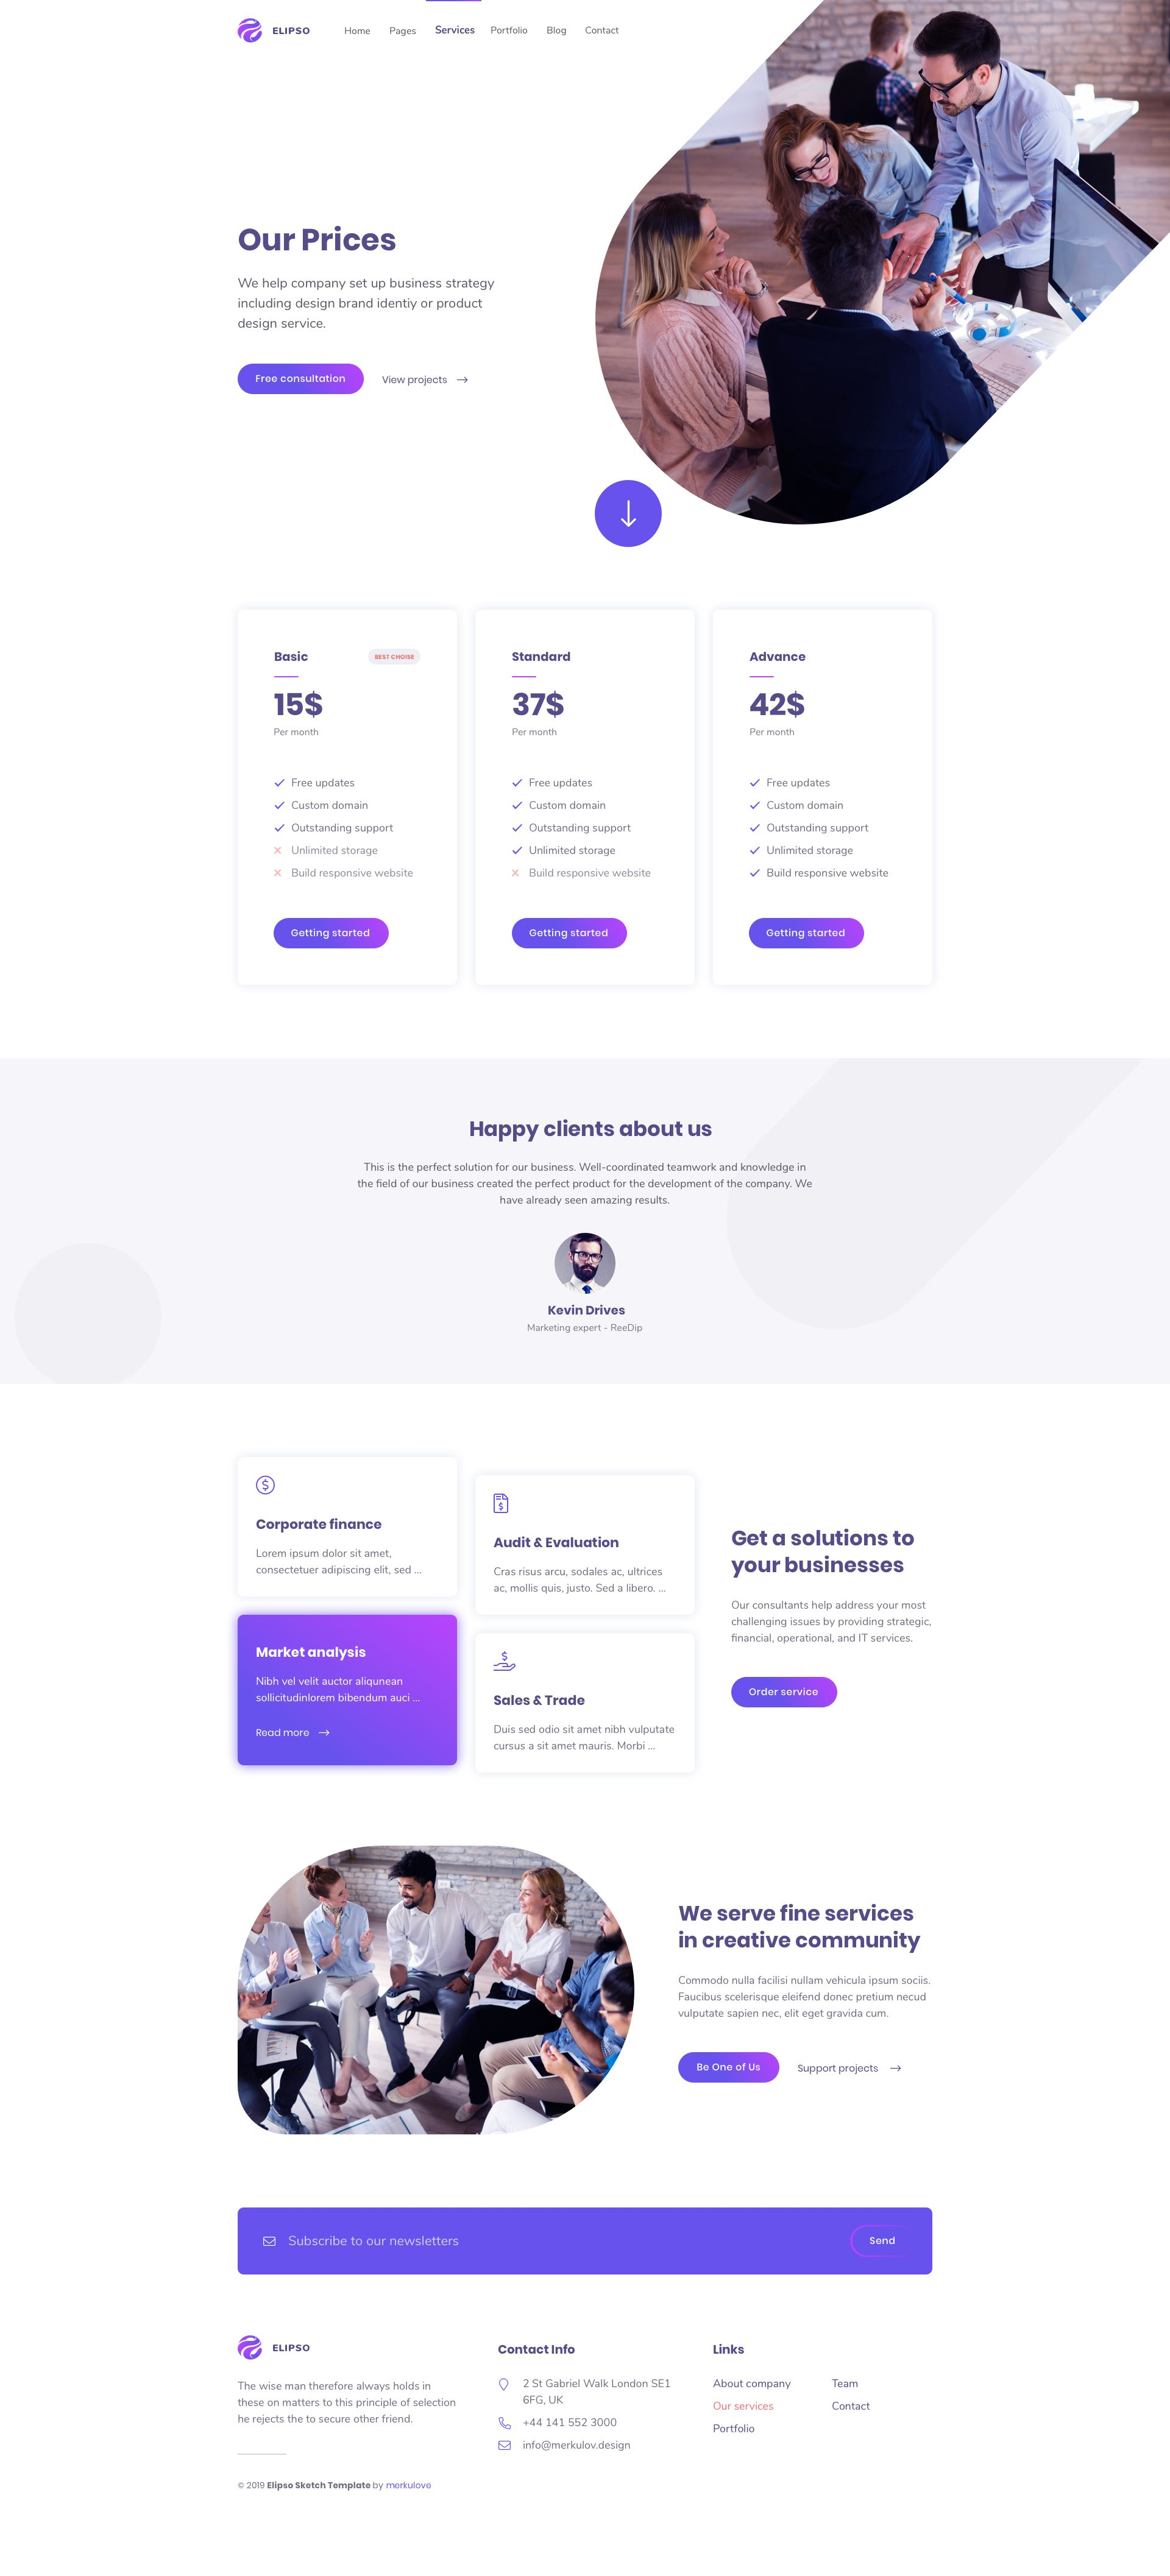 Elipso C Agency Photoshop Template Ad Agency Elipso Template Photoshop Photoshop Template Digital Agencies Templates